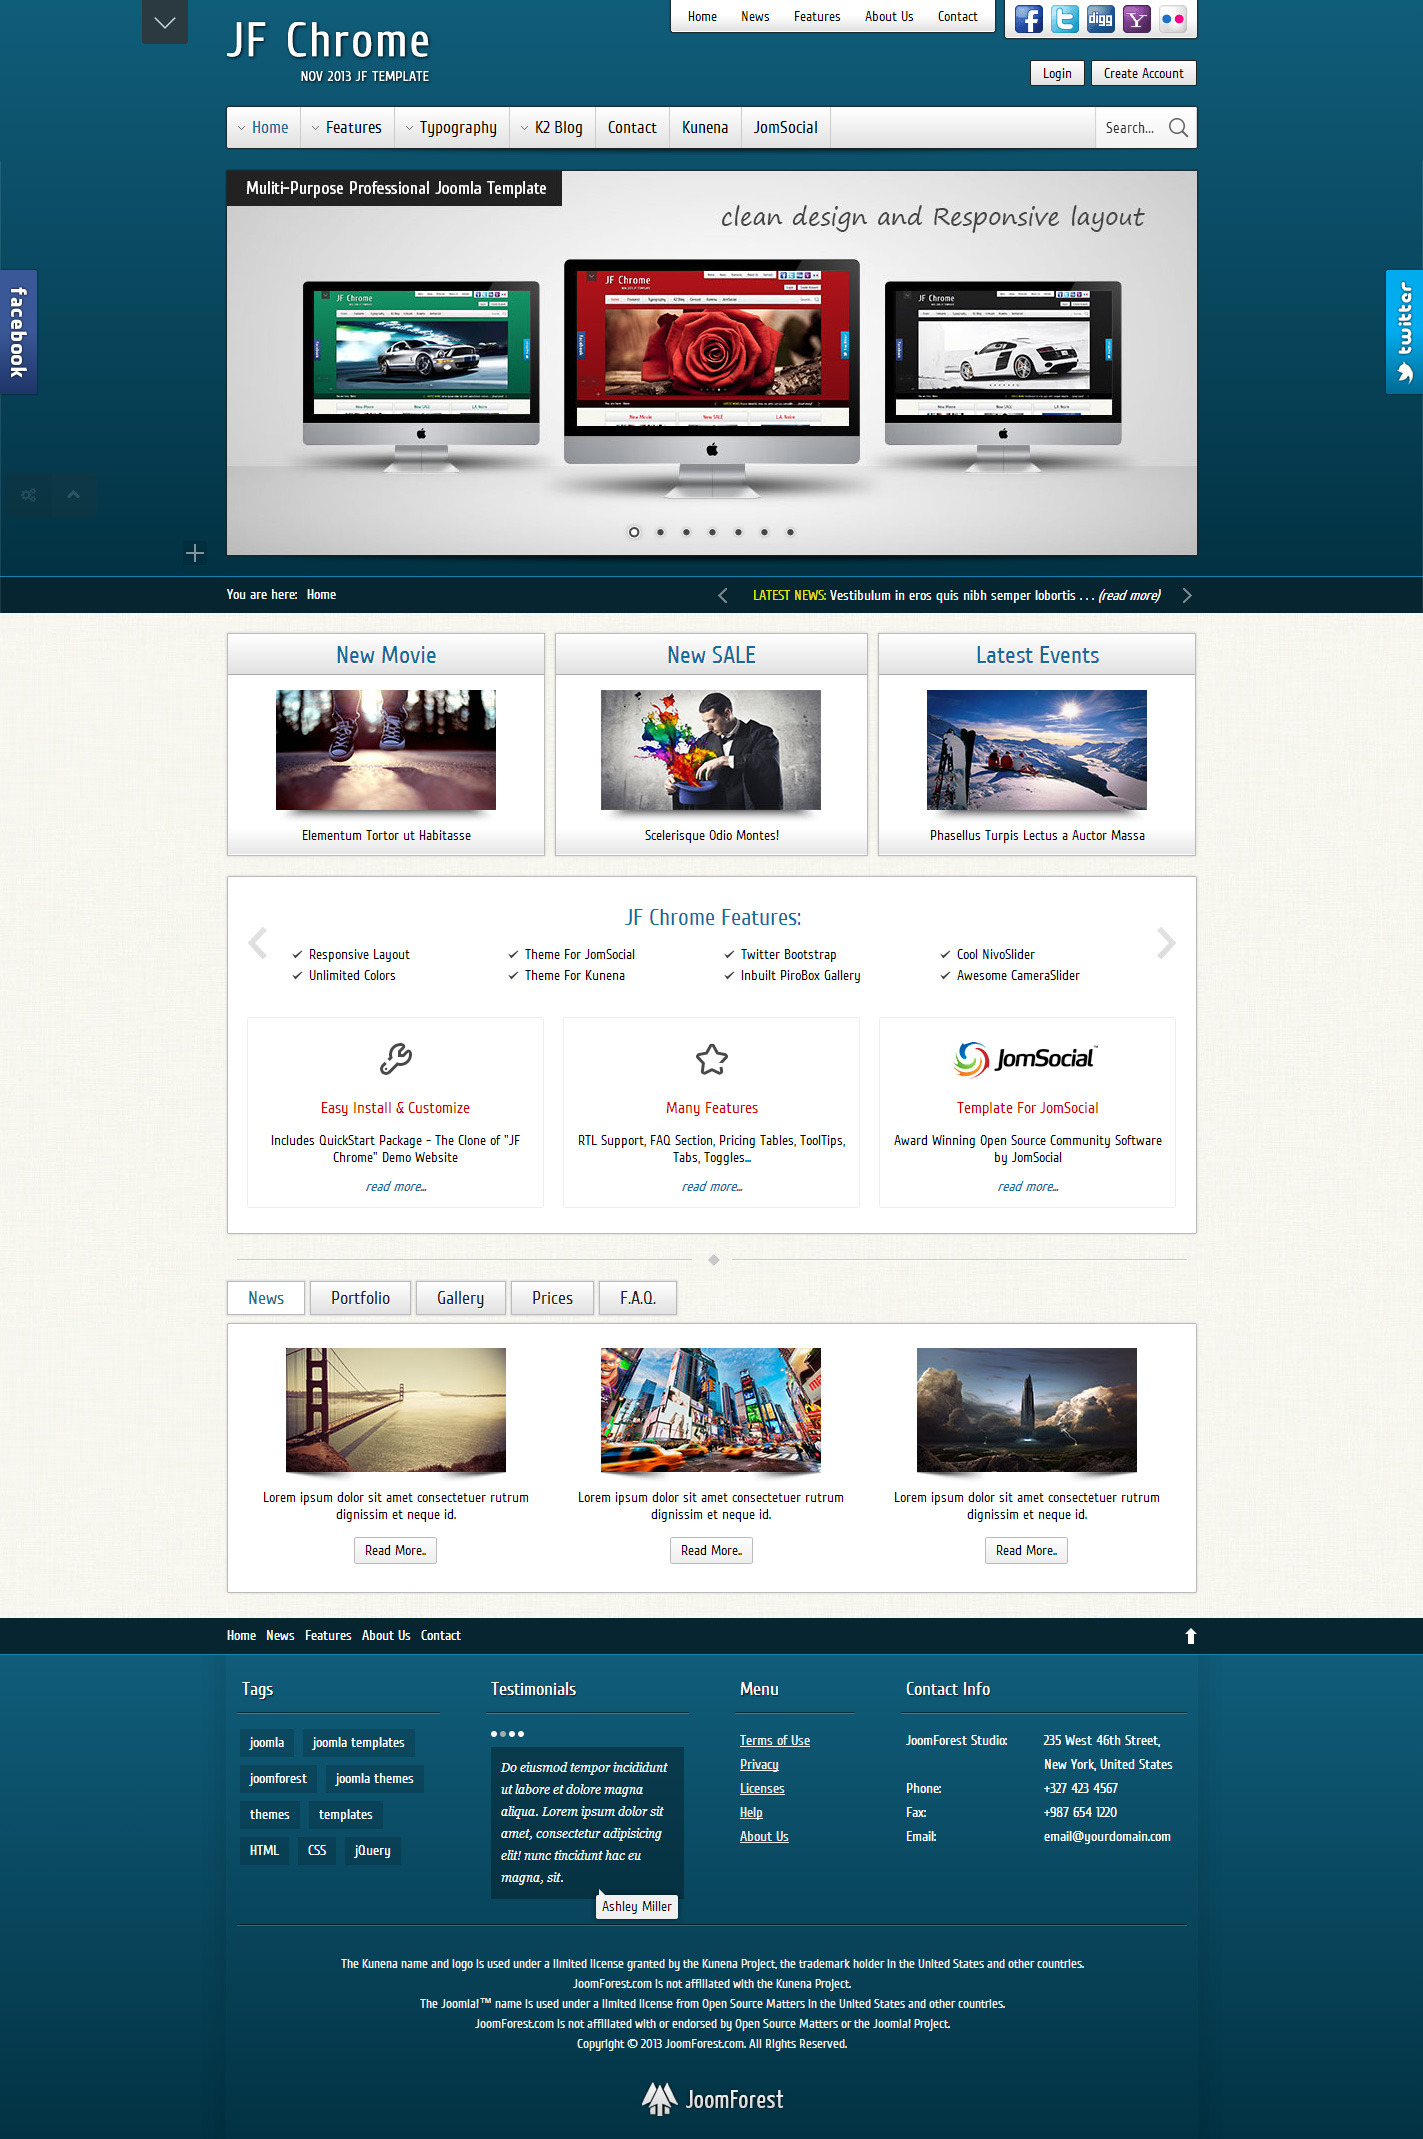 JF Chrome - Joomla Kunena JomSocial Template - JF Chrome - Blue Skin